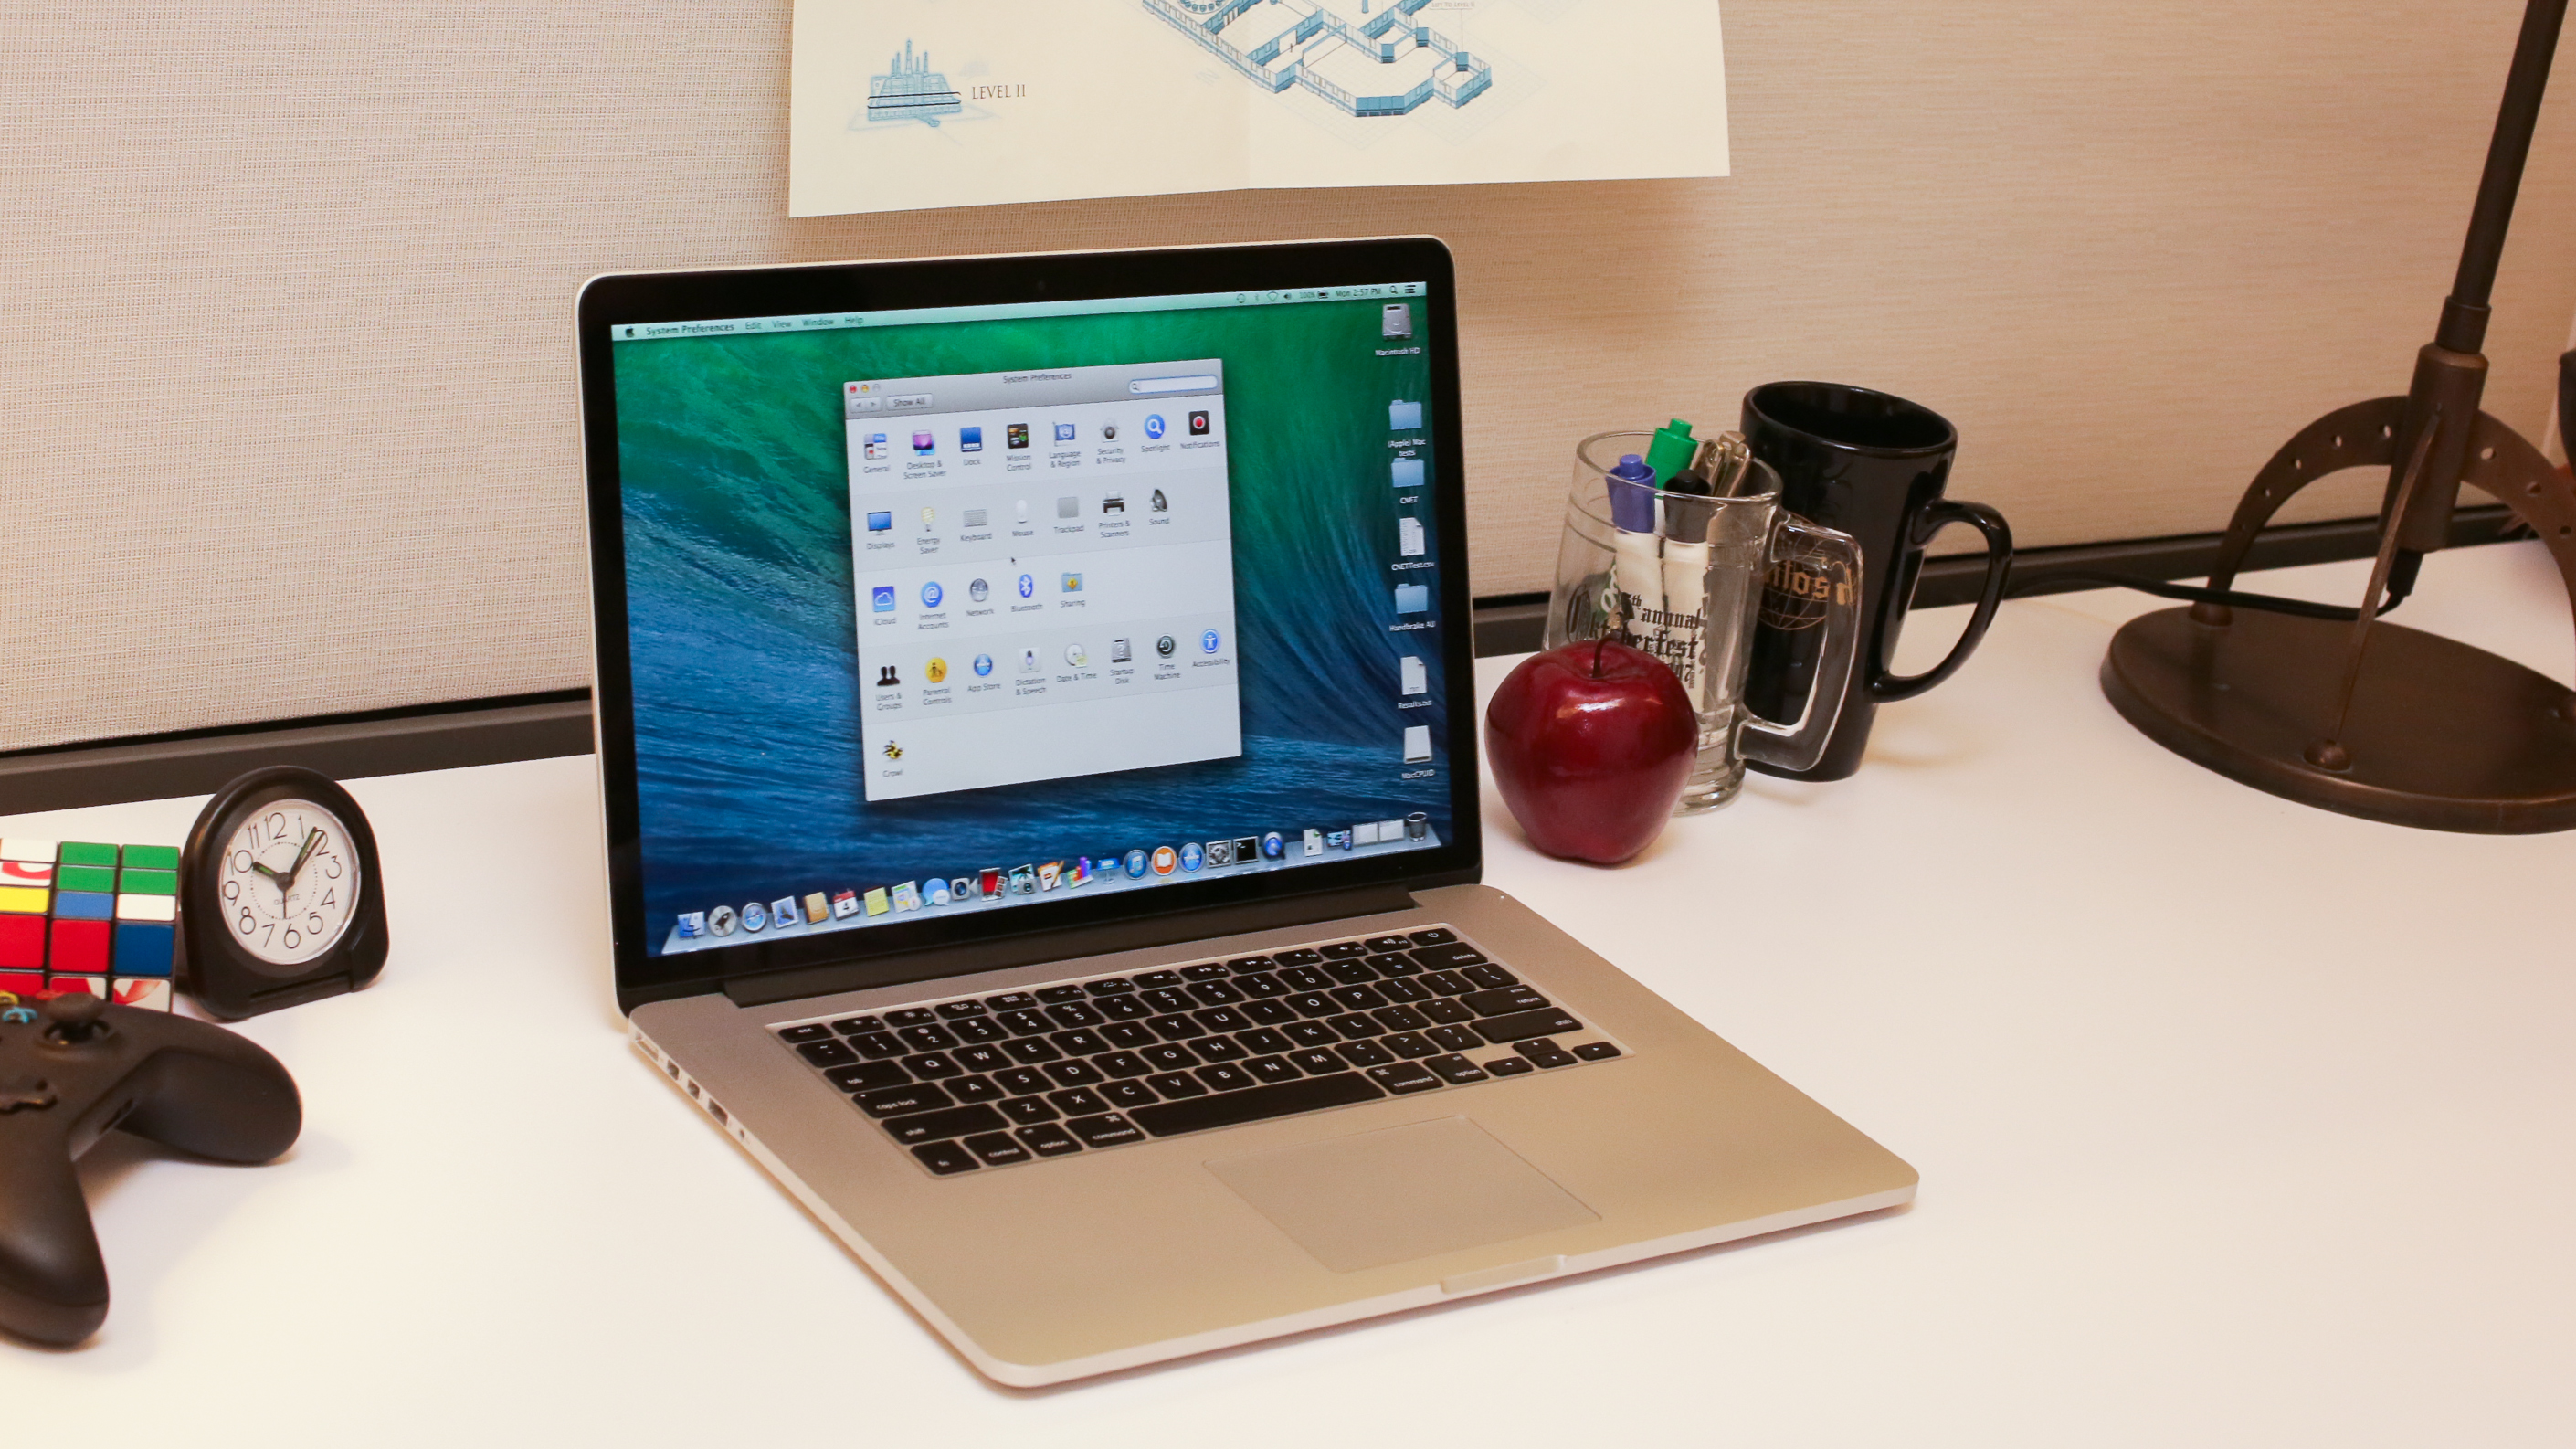 apple-macbook-pro-with-retina-display-15-inch-july-2014-product-photos12.jpg